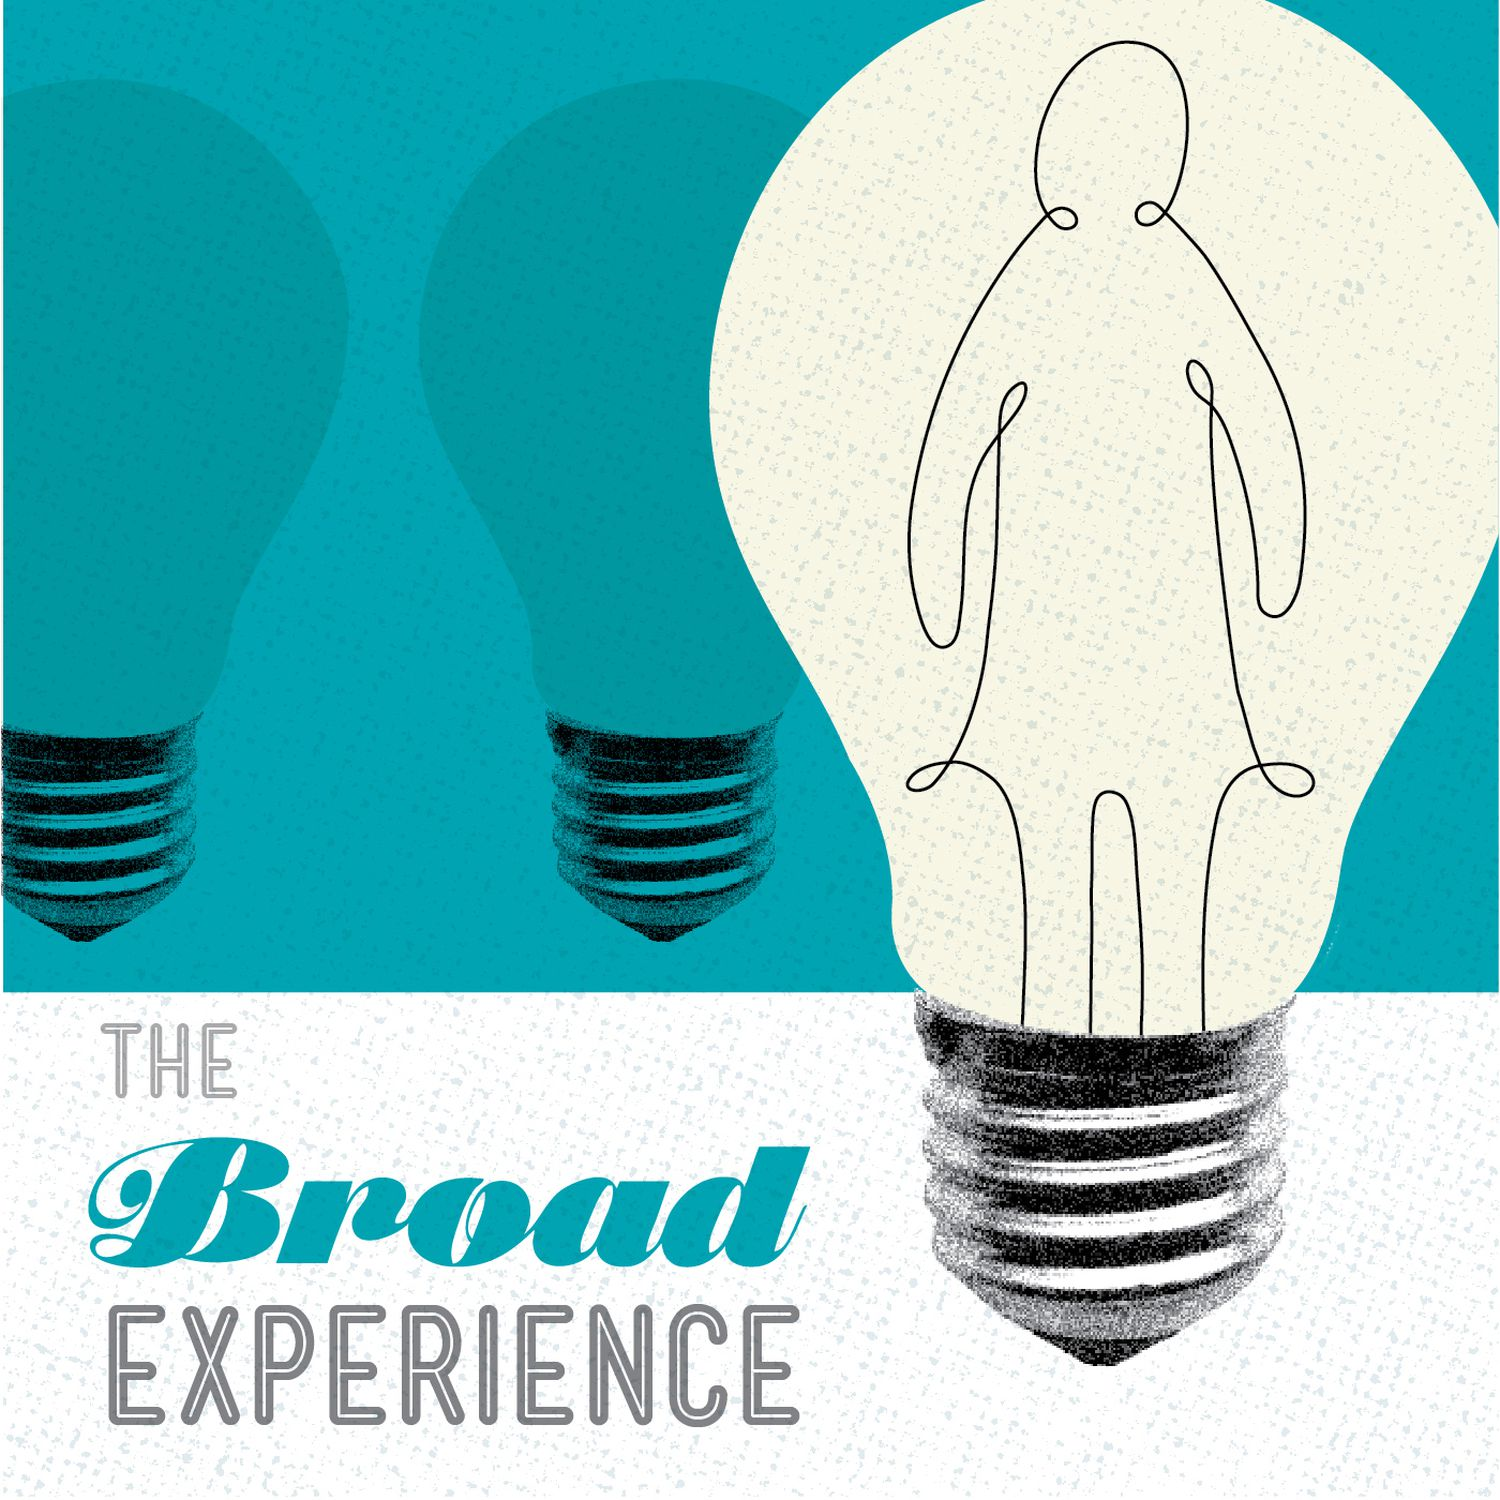 The Broad Experience podcast